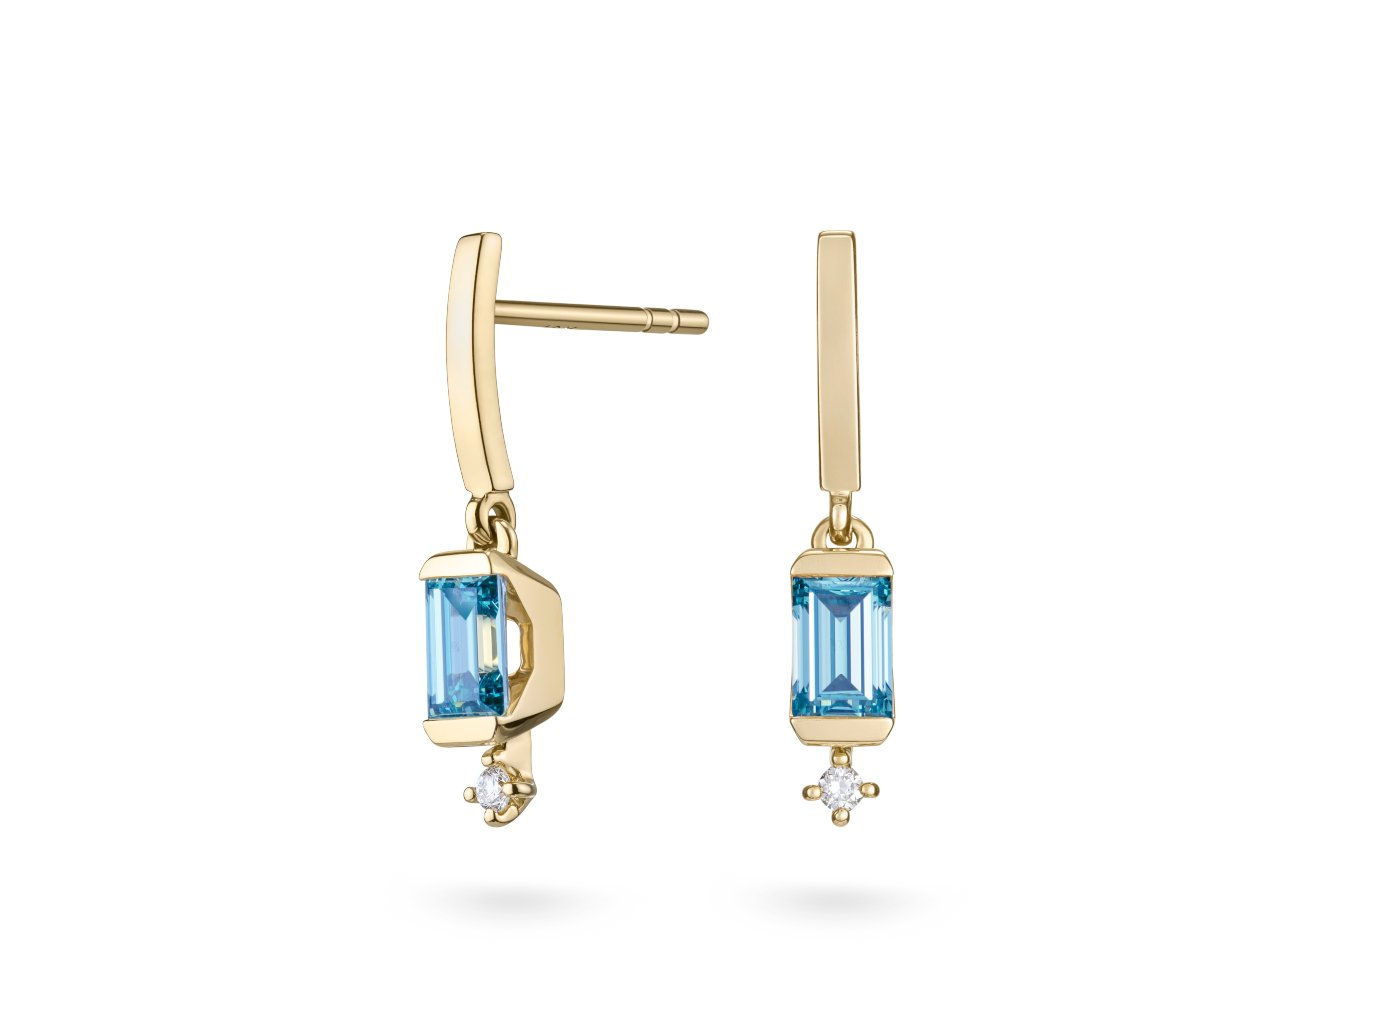 Side view of Linear Drop 4/5 carat earrings with blue and white diamonds